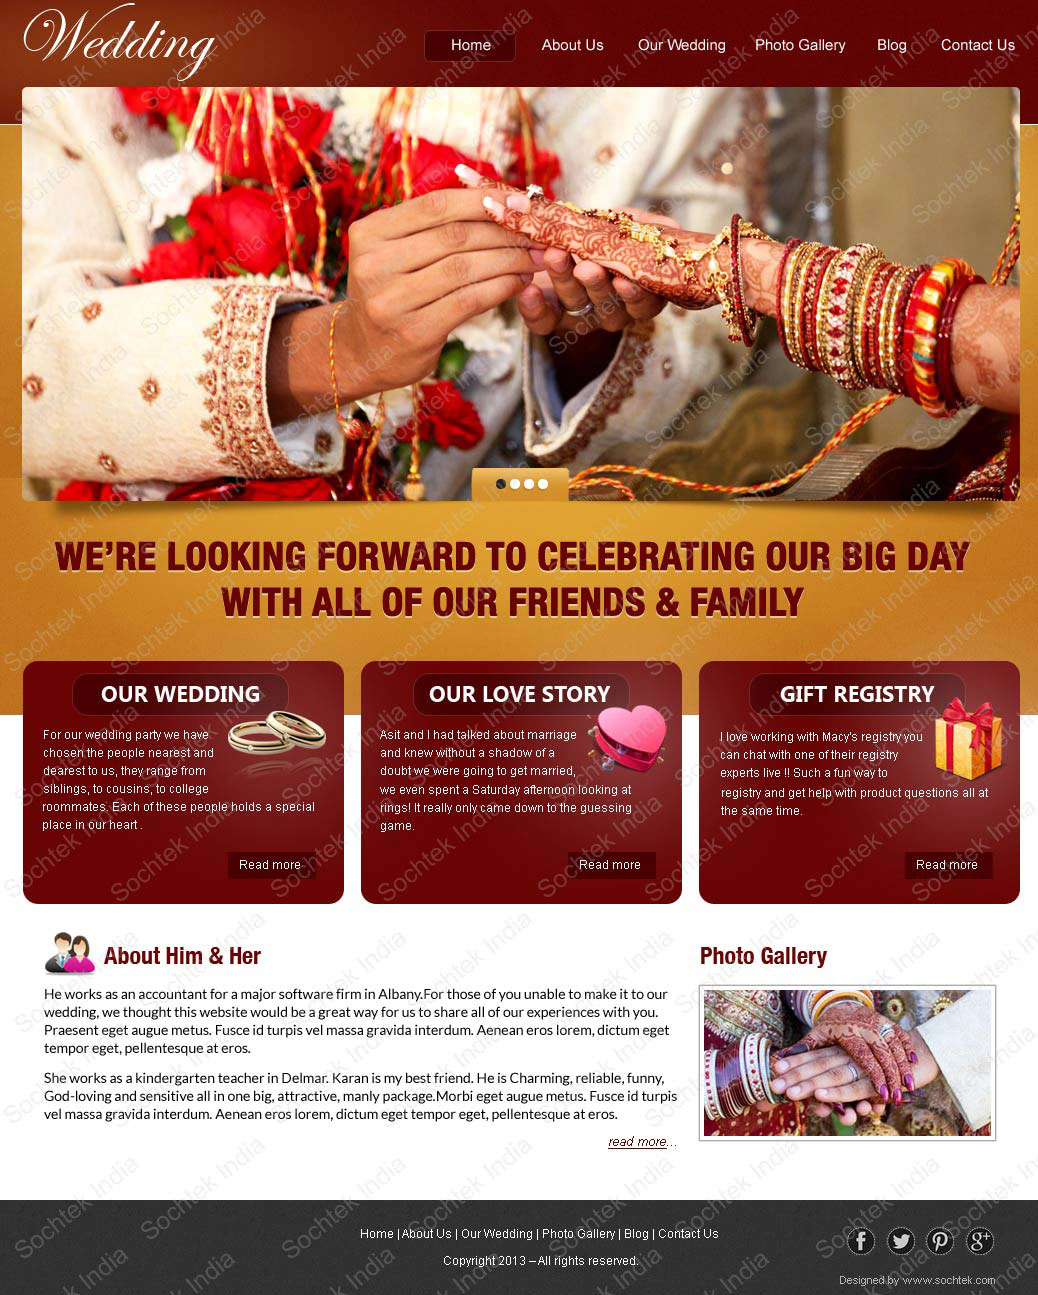 wedding-website-design